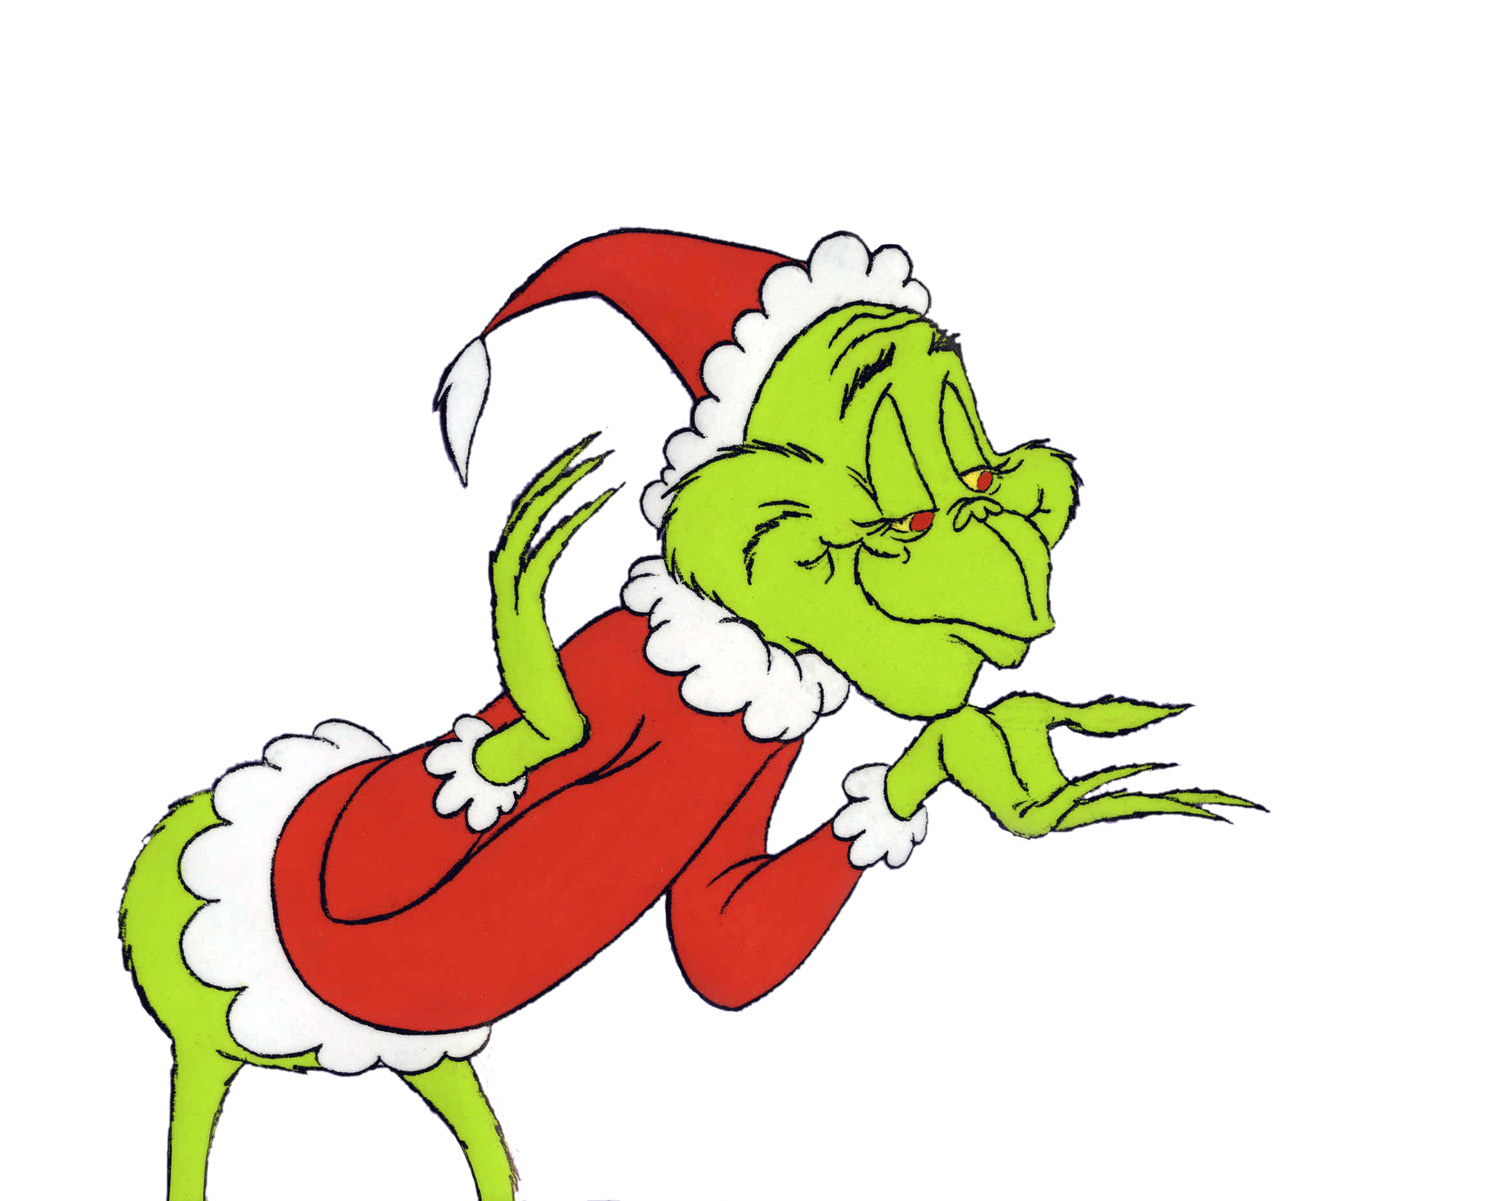 Pix For U0026gt; The Grinch Who Stole Ch-Pix For u0026gt; The Grinch Who Stole Christmas Book Characters-11